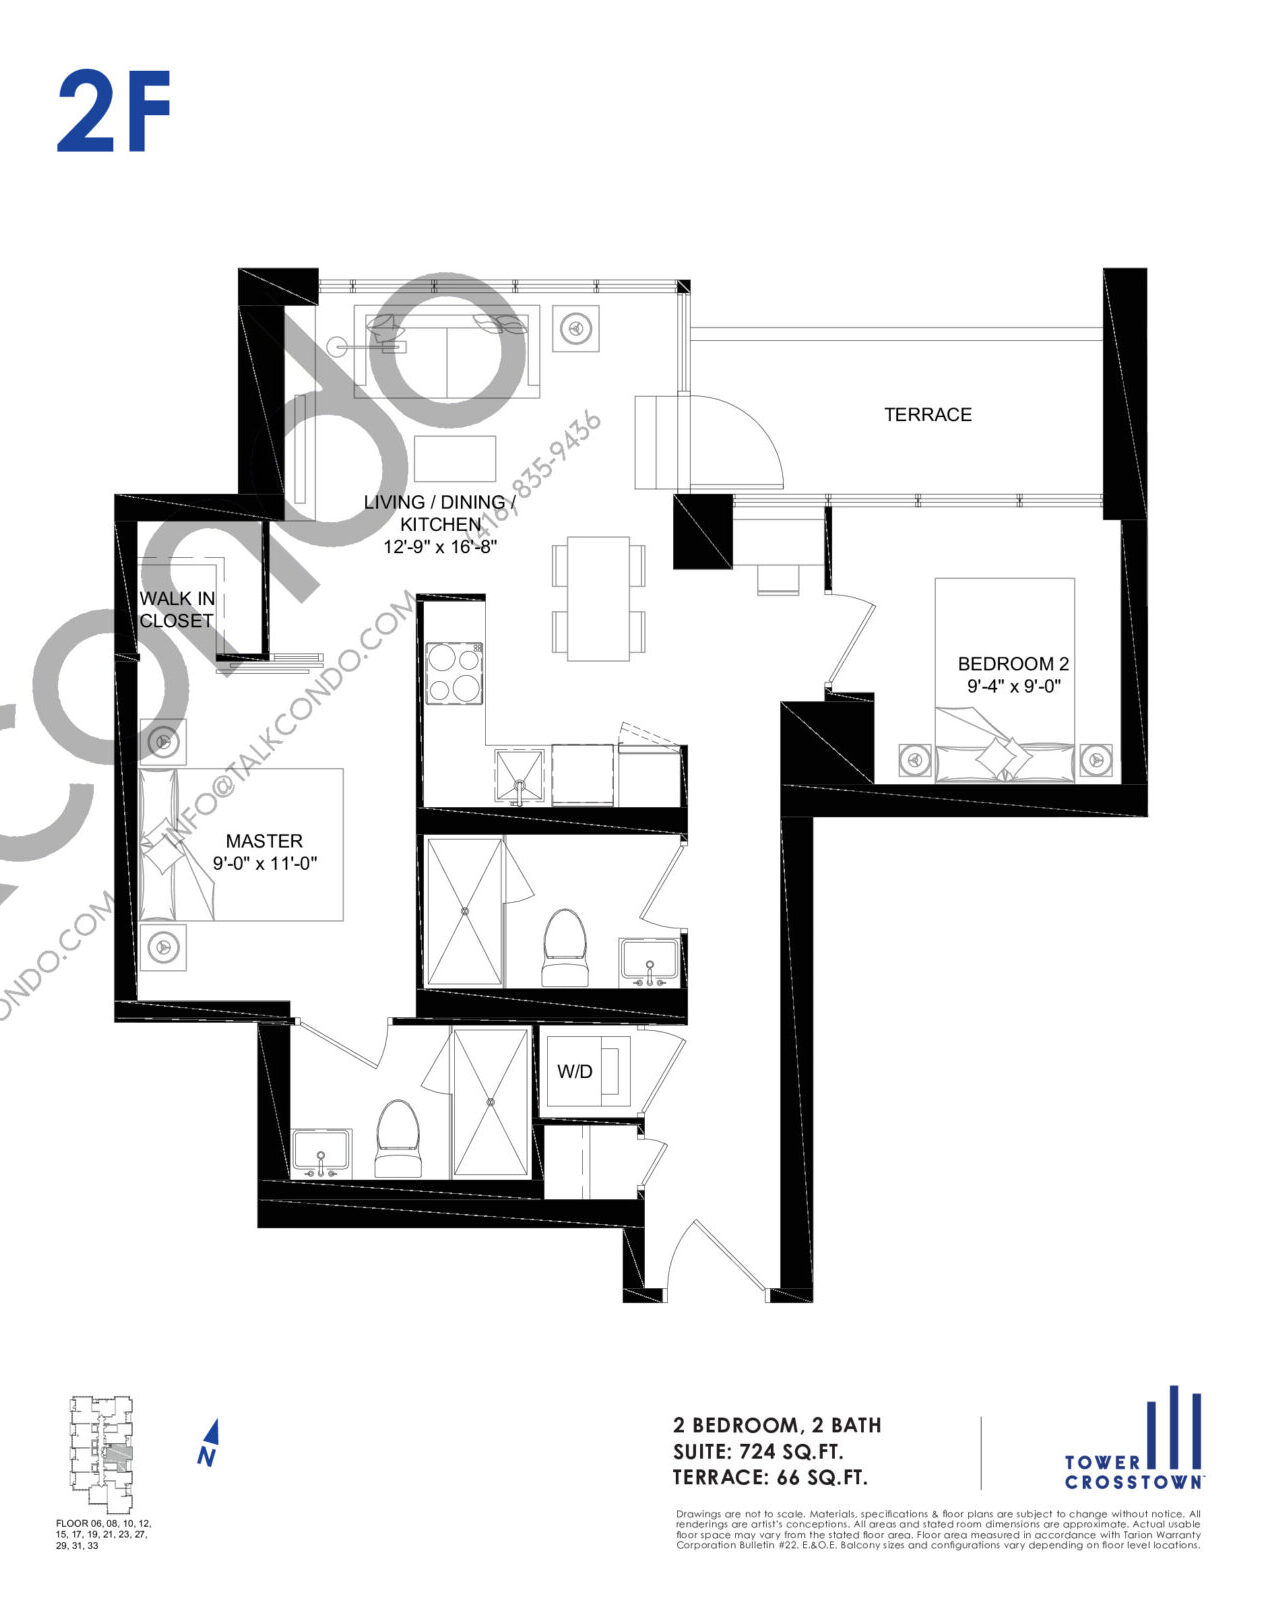 2F Floor Plan at Crosstown Tower 3 Condos - 724 sq.ft